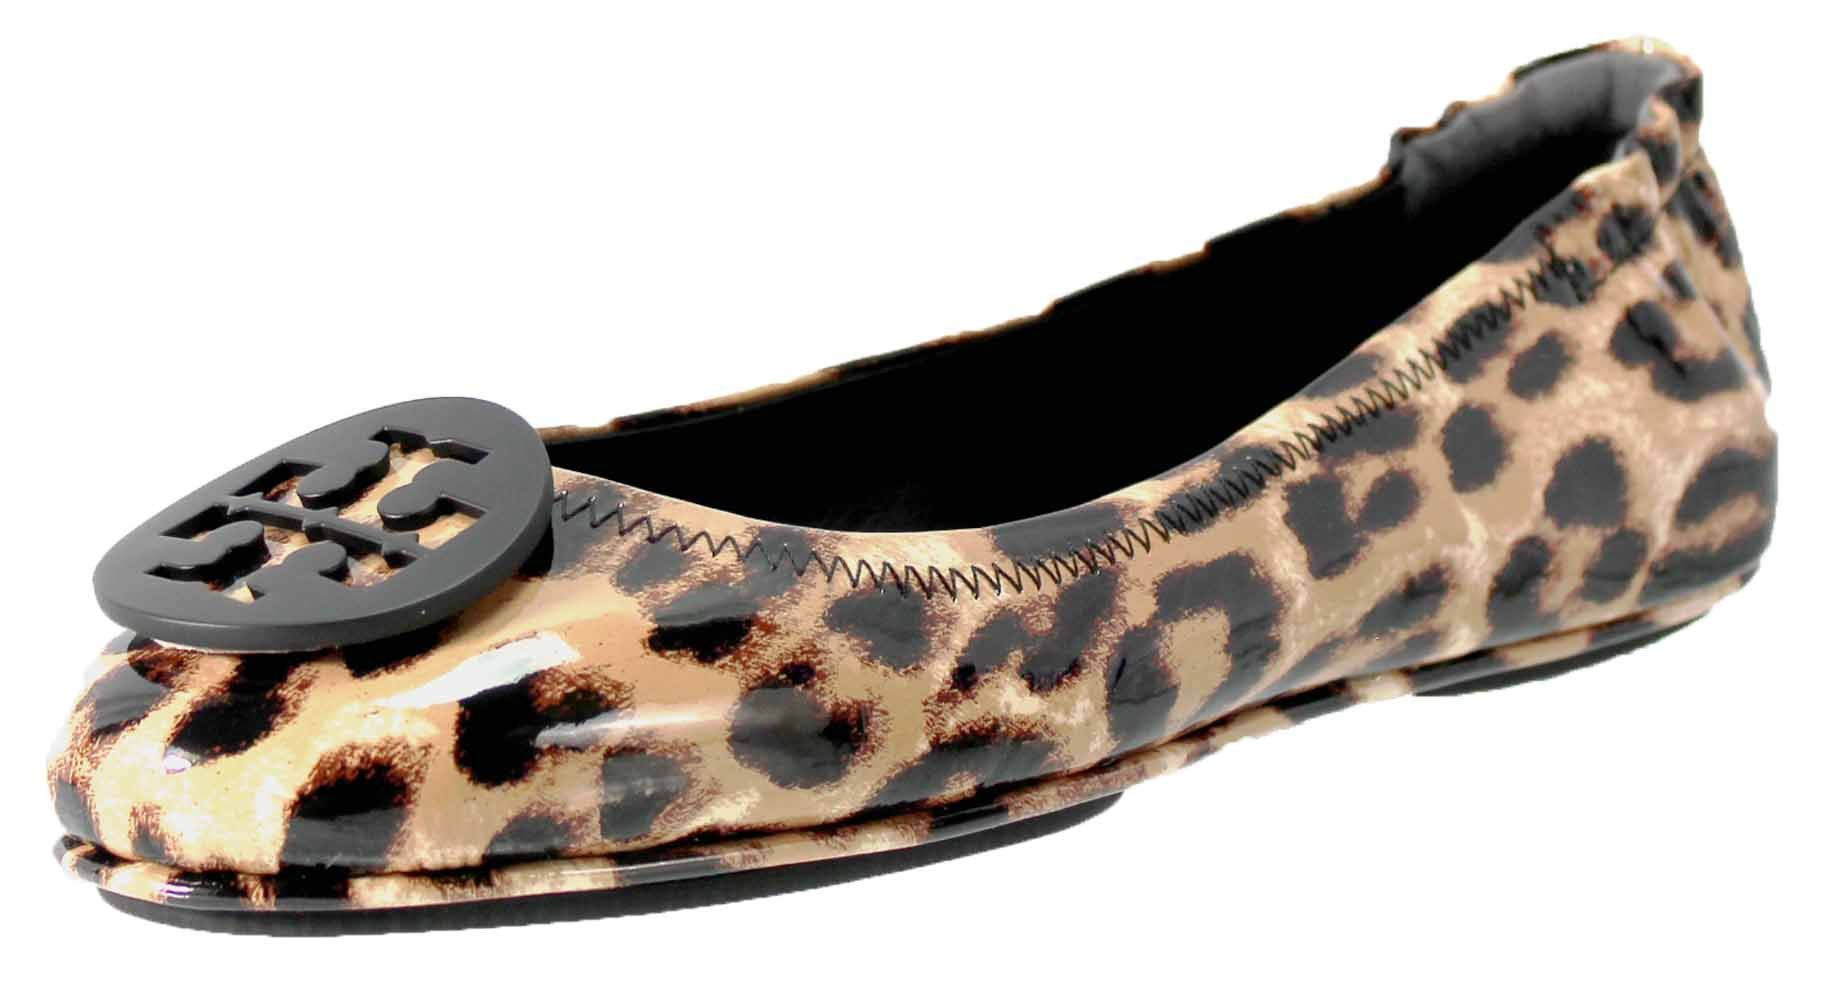 Tory Burch Minnie Travel Patent Leather Ballet Flats In Natural Leopard Size 6